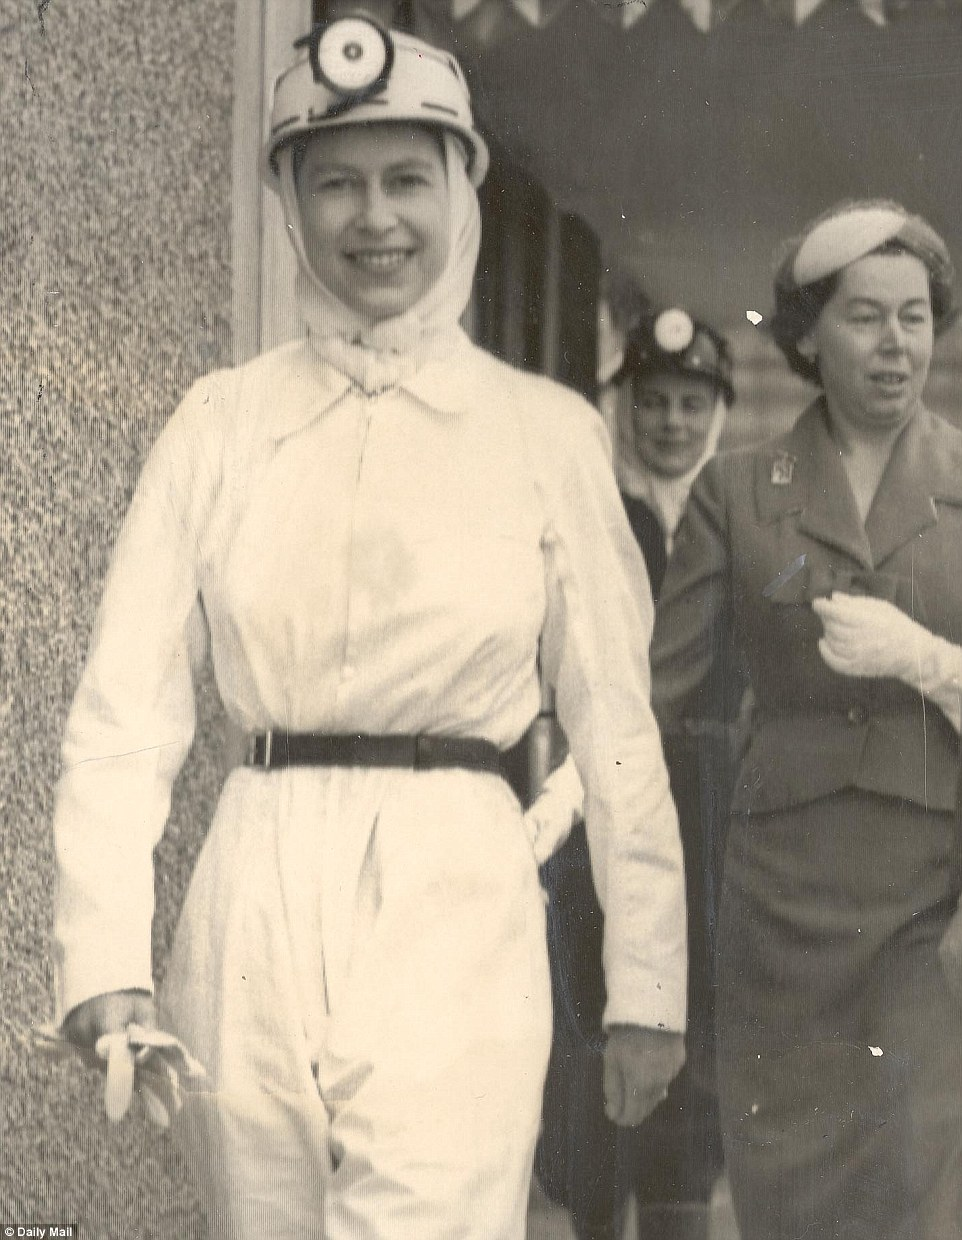 1958: Dressed in white togs, black gumboots and a miner's helmet, the Queen prepares to go down Rothes Colliery during a visit to Fife, Scotland